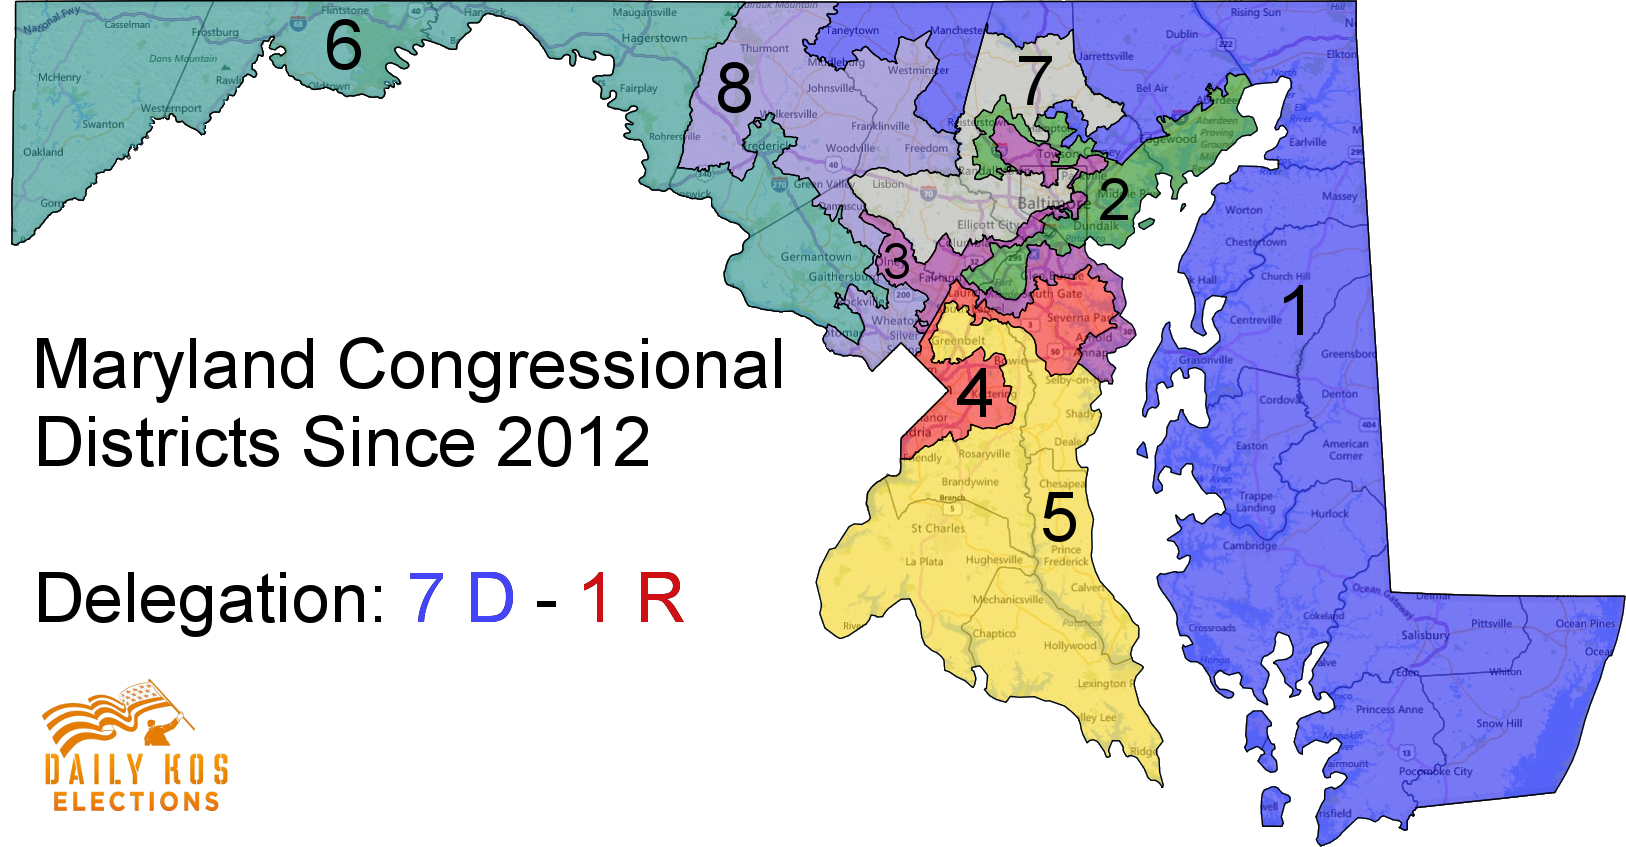 Maryland_Congressional_Map.png?151647966